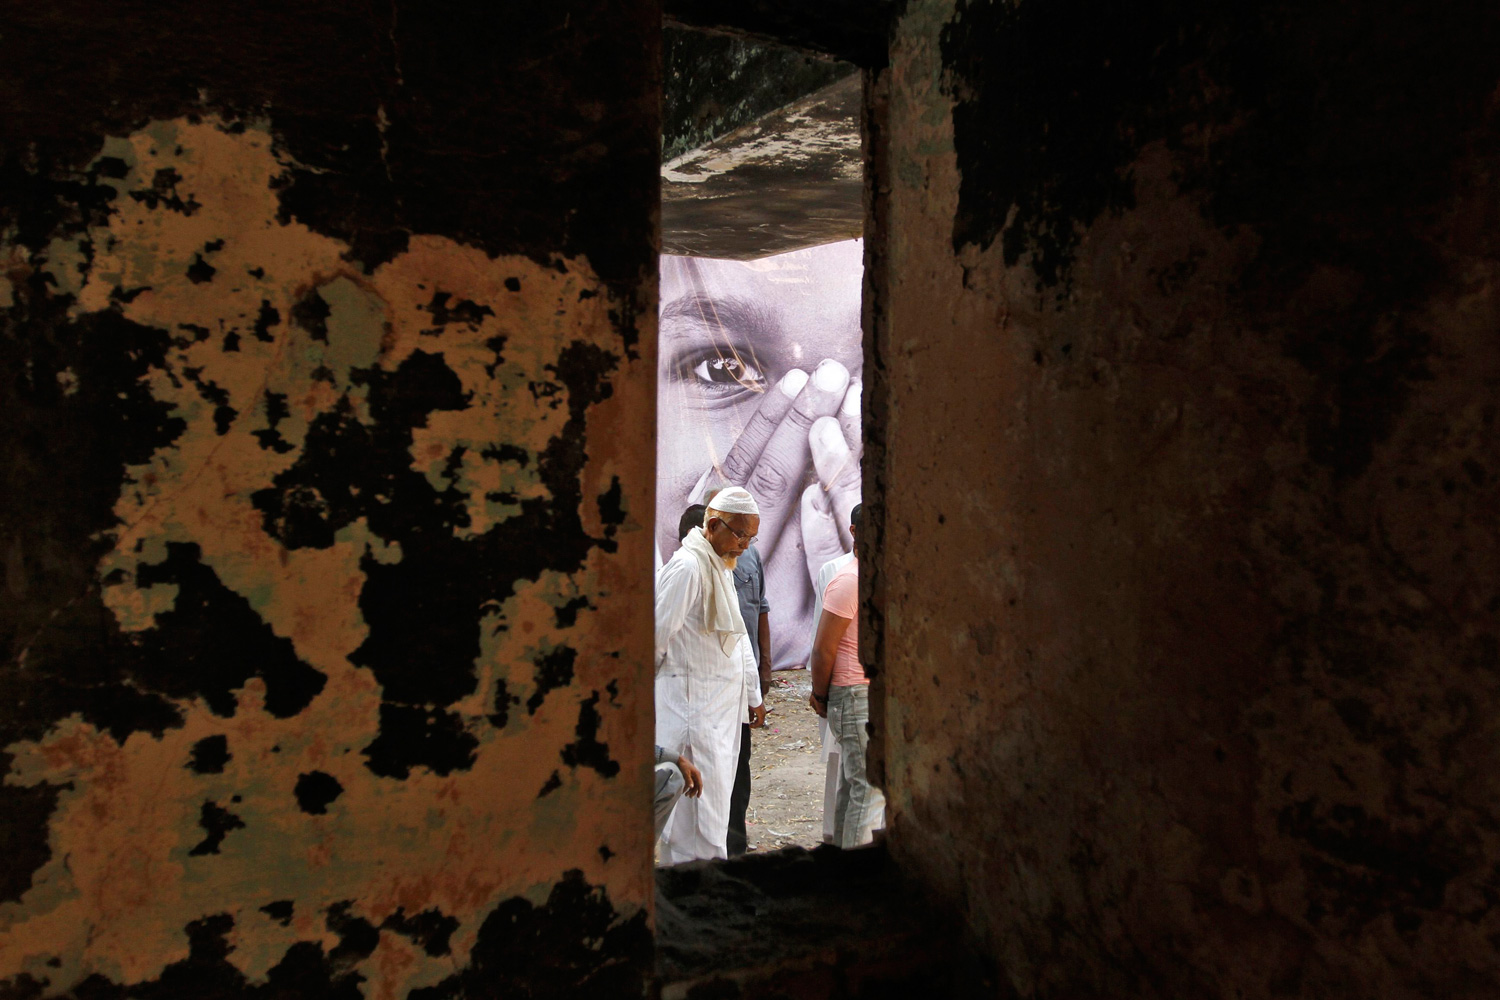 Feb. 27, 2012. A survivor stands outside his house that was burnt and damaged in the Godhra riots during the commemoration of its 10th anniversary, in the western Indian city of Ahmedabad.